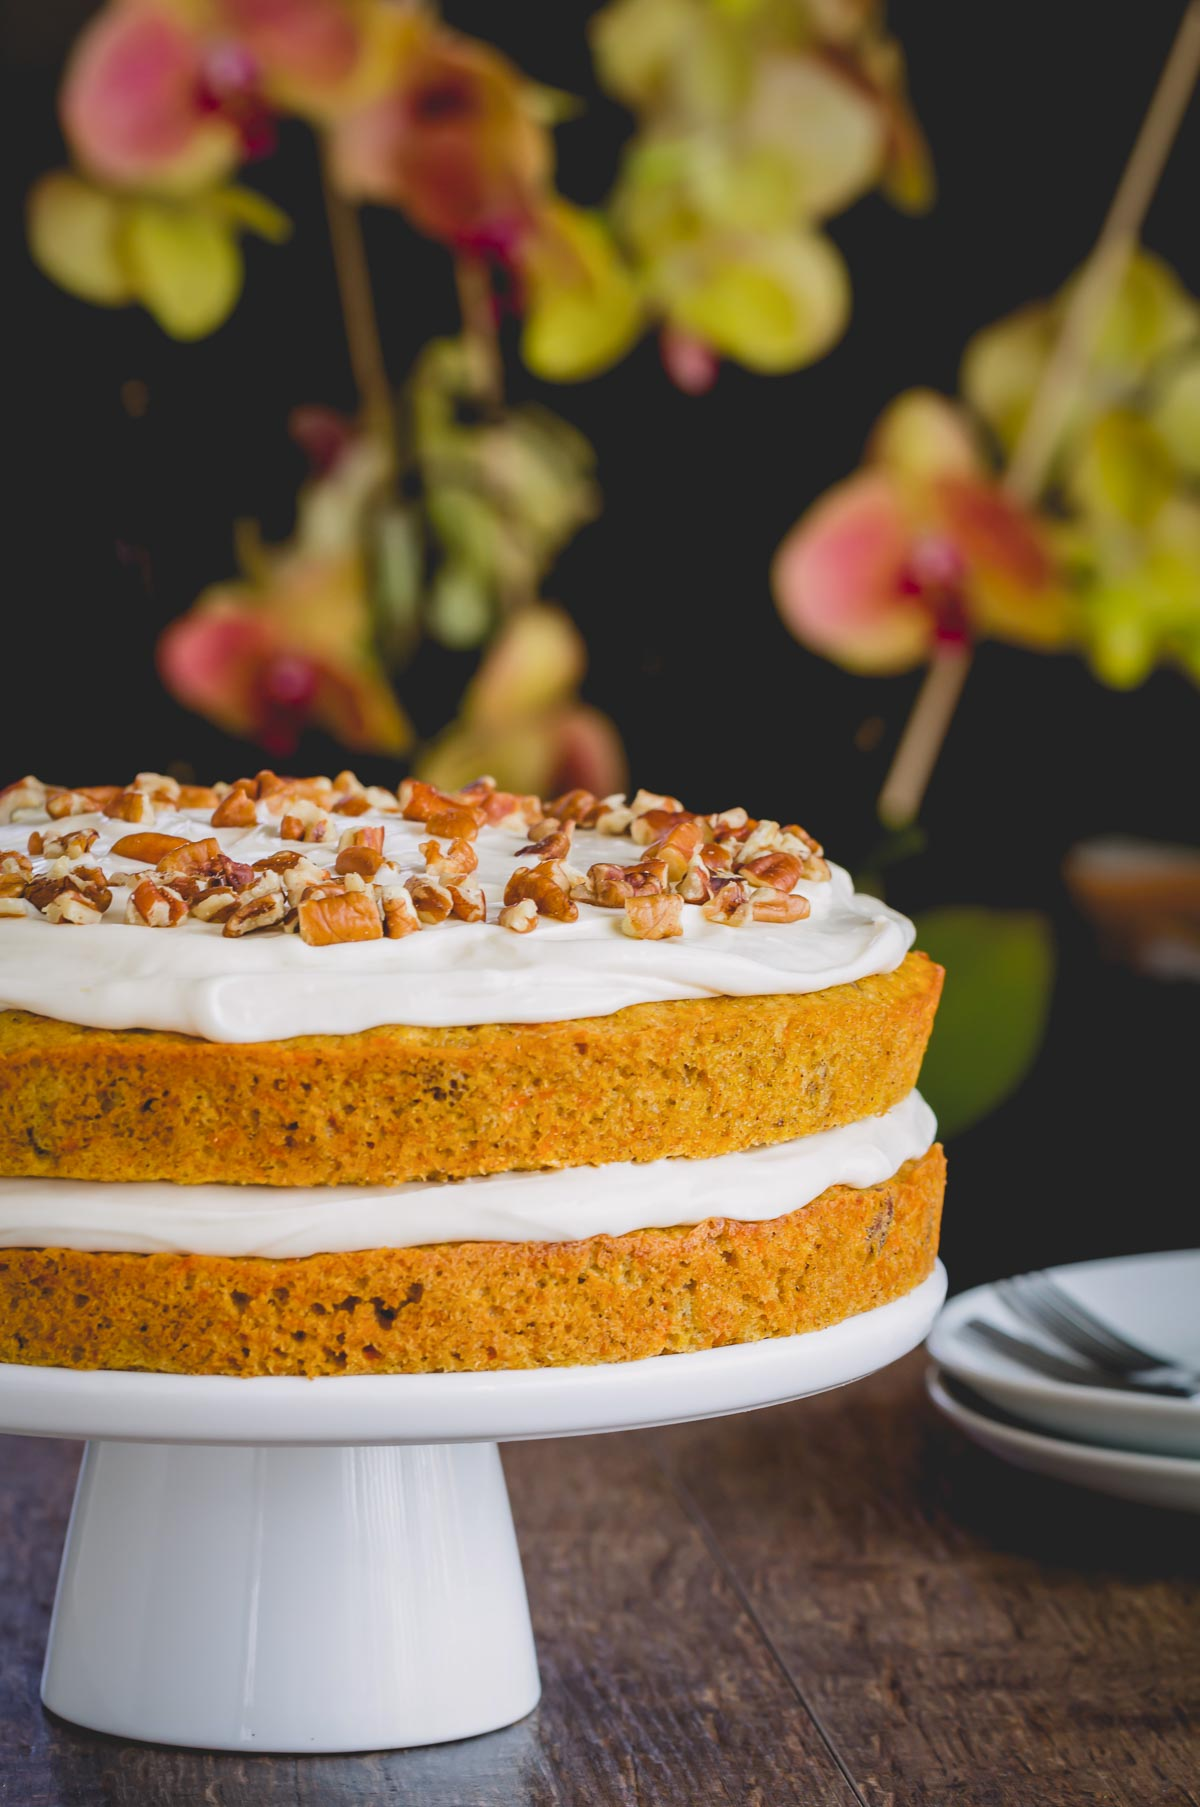 A whole carrot cake on a white cake platter.